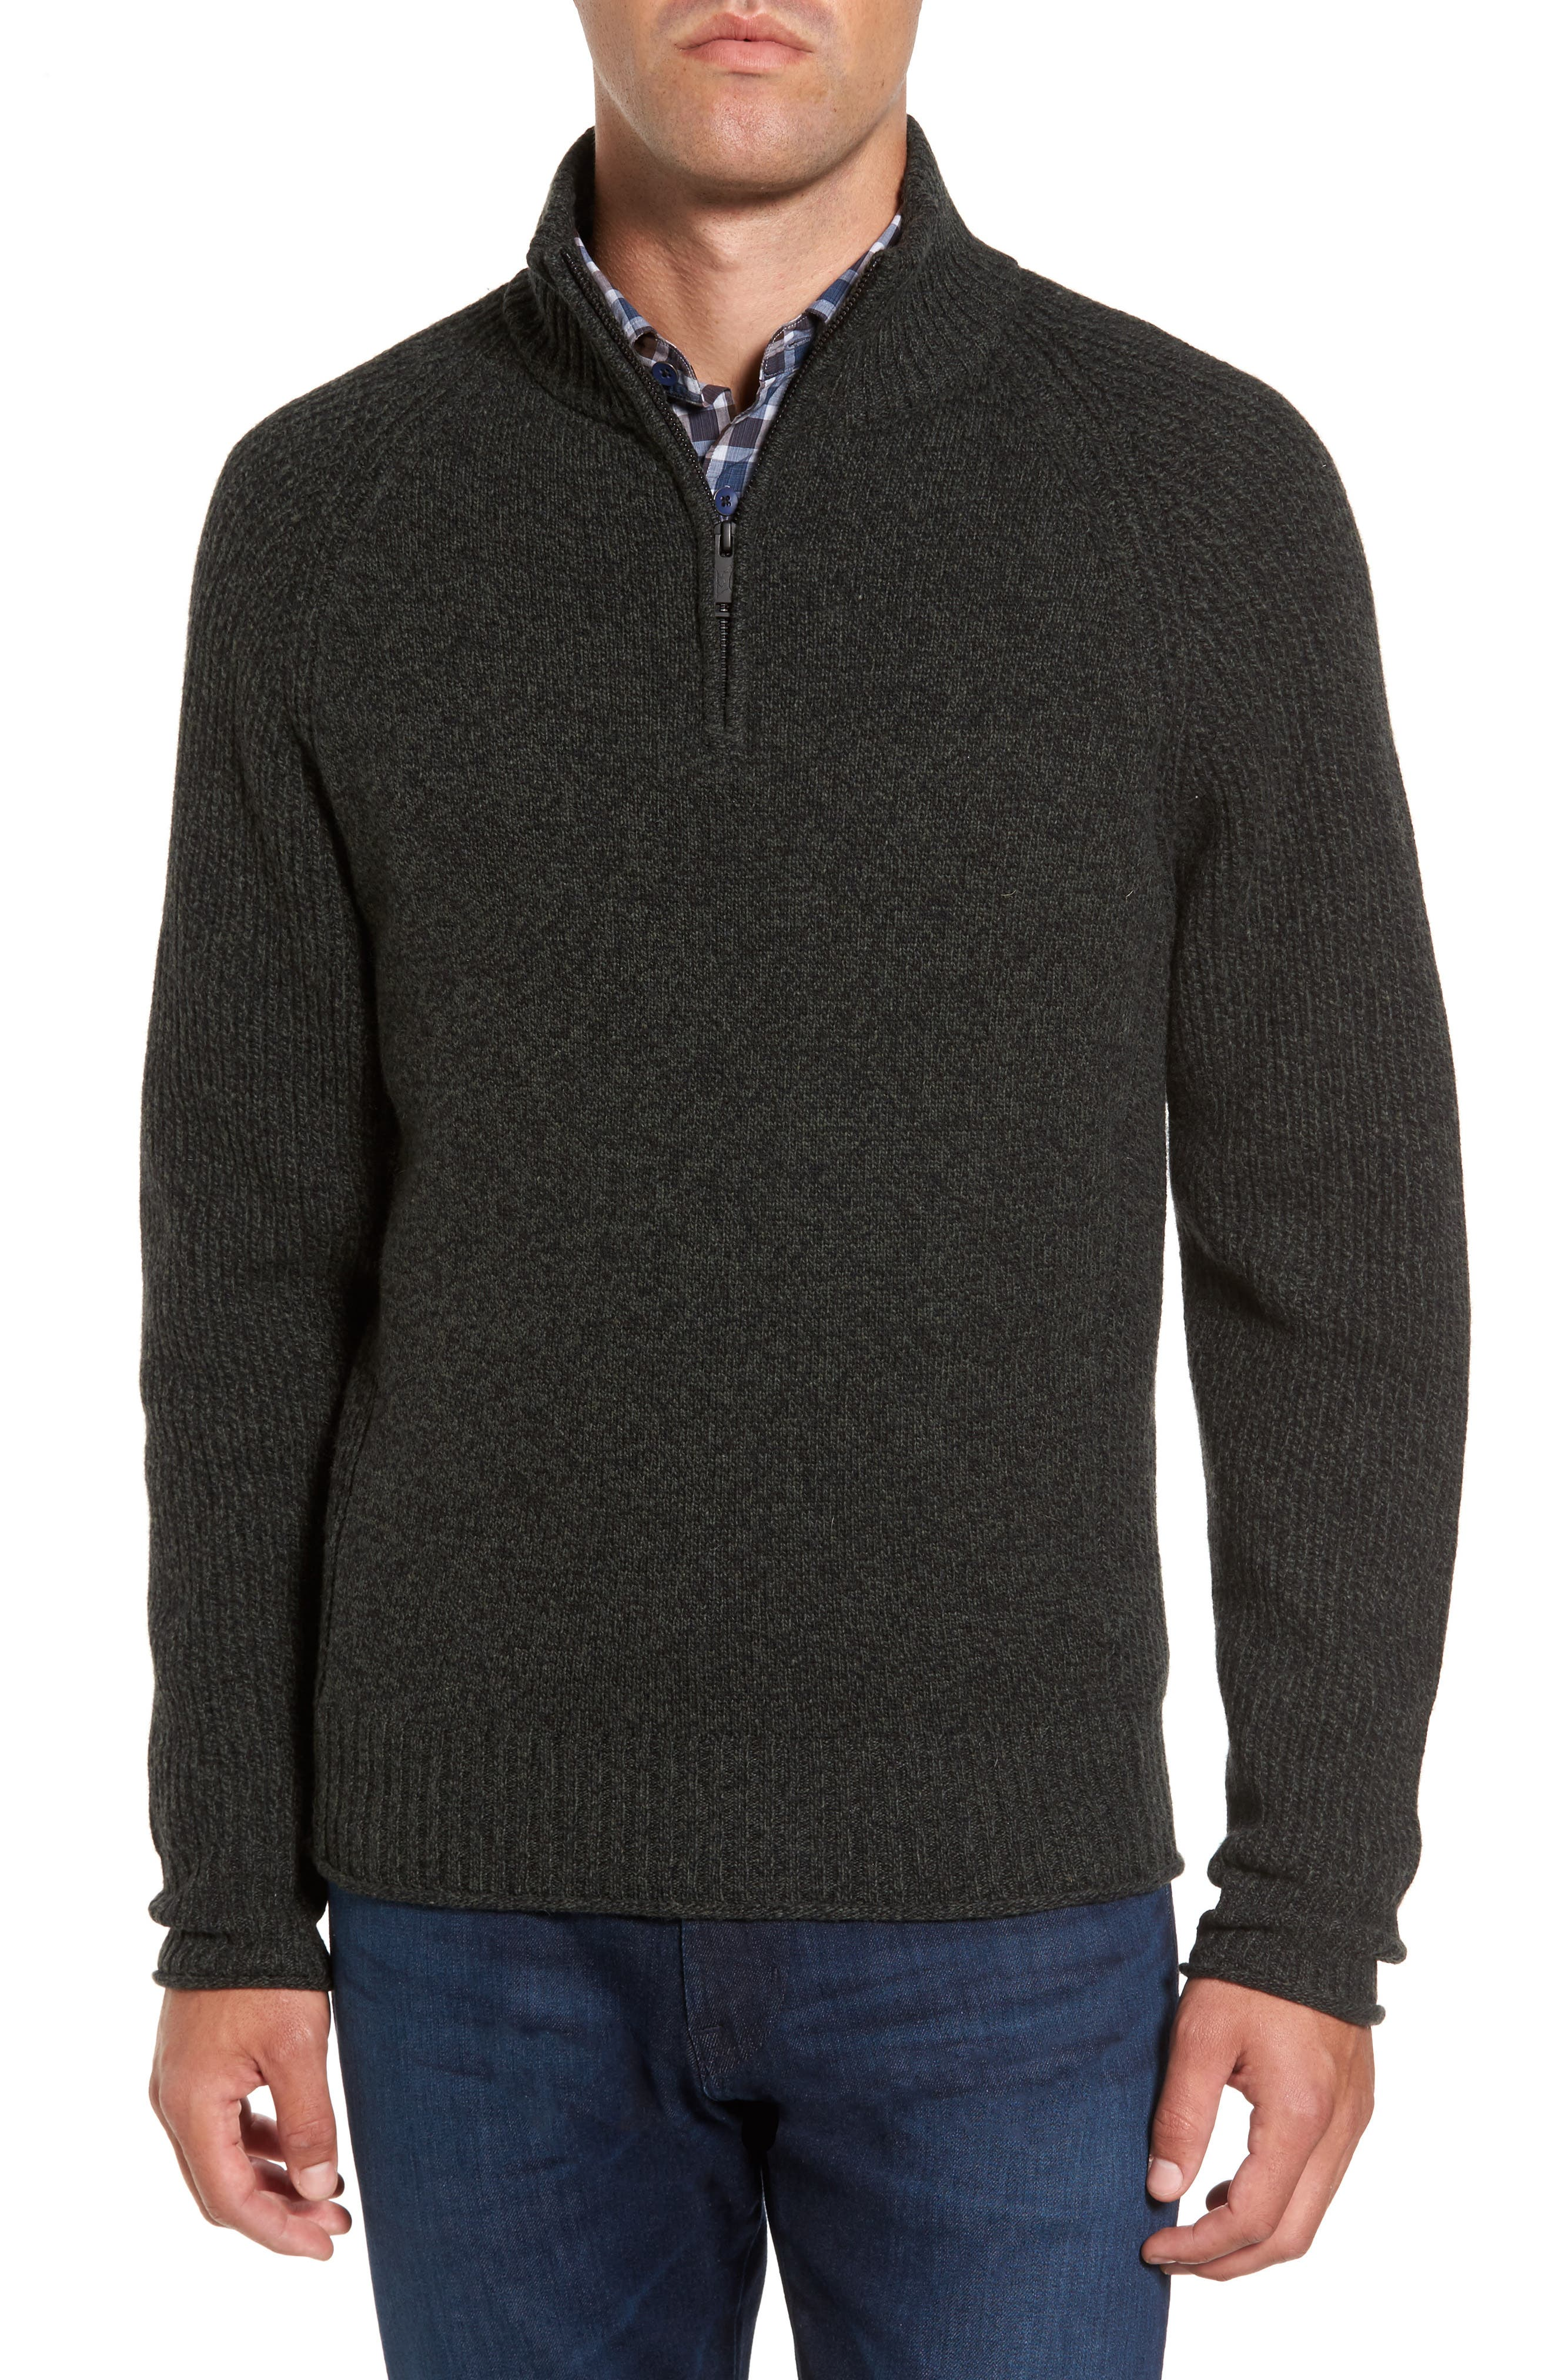 Stredwick Lambswool Sweater,                             Main thumbnail 2, color,